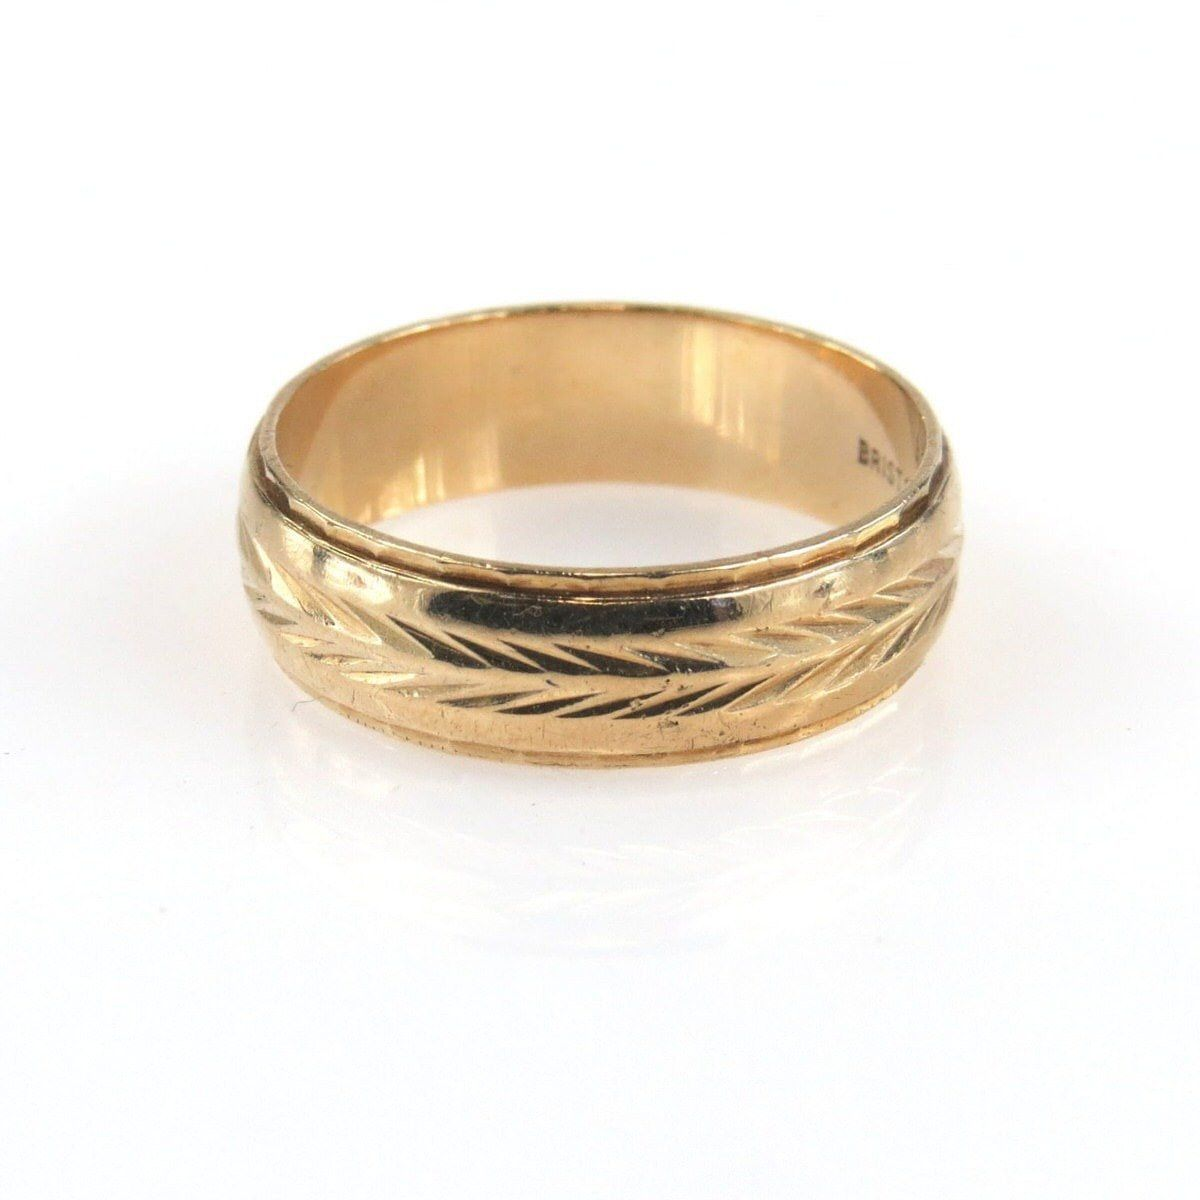 wide product narrower ring notonthehighstreet by gold alisonmooredesigns shown designs wedding original bands with alison com moore organic